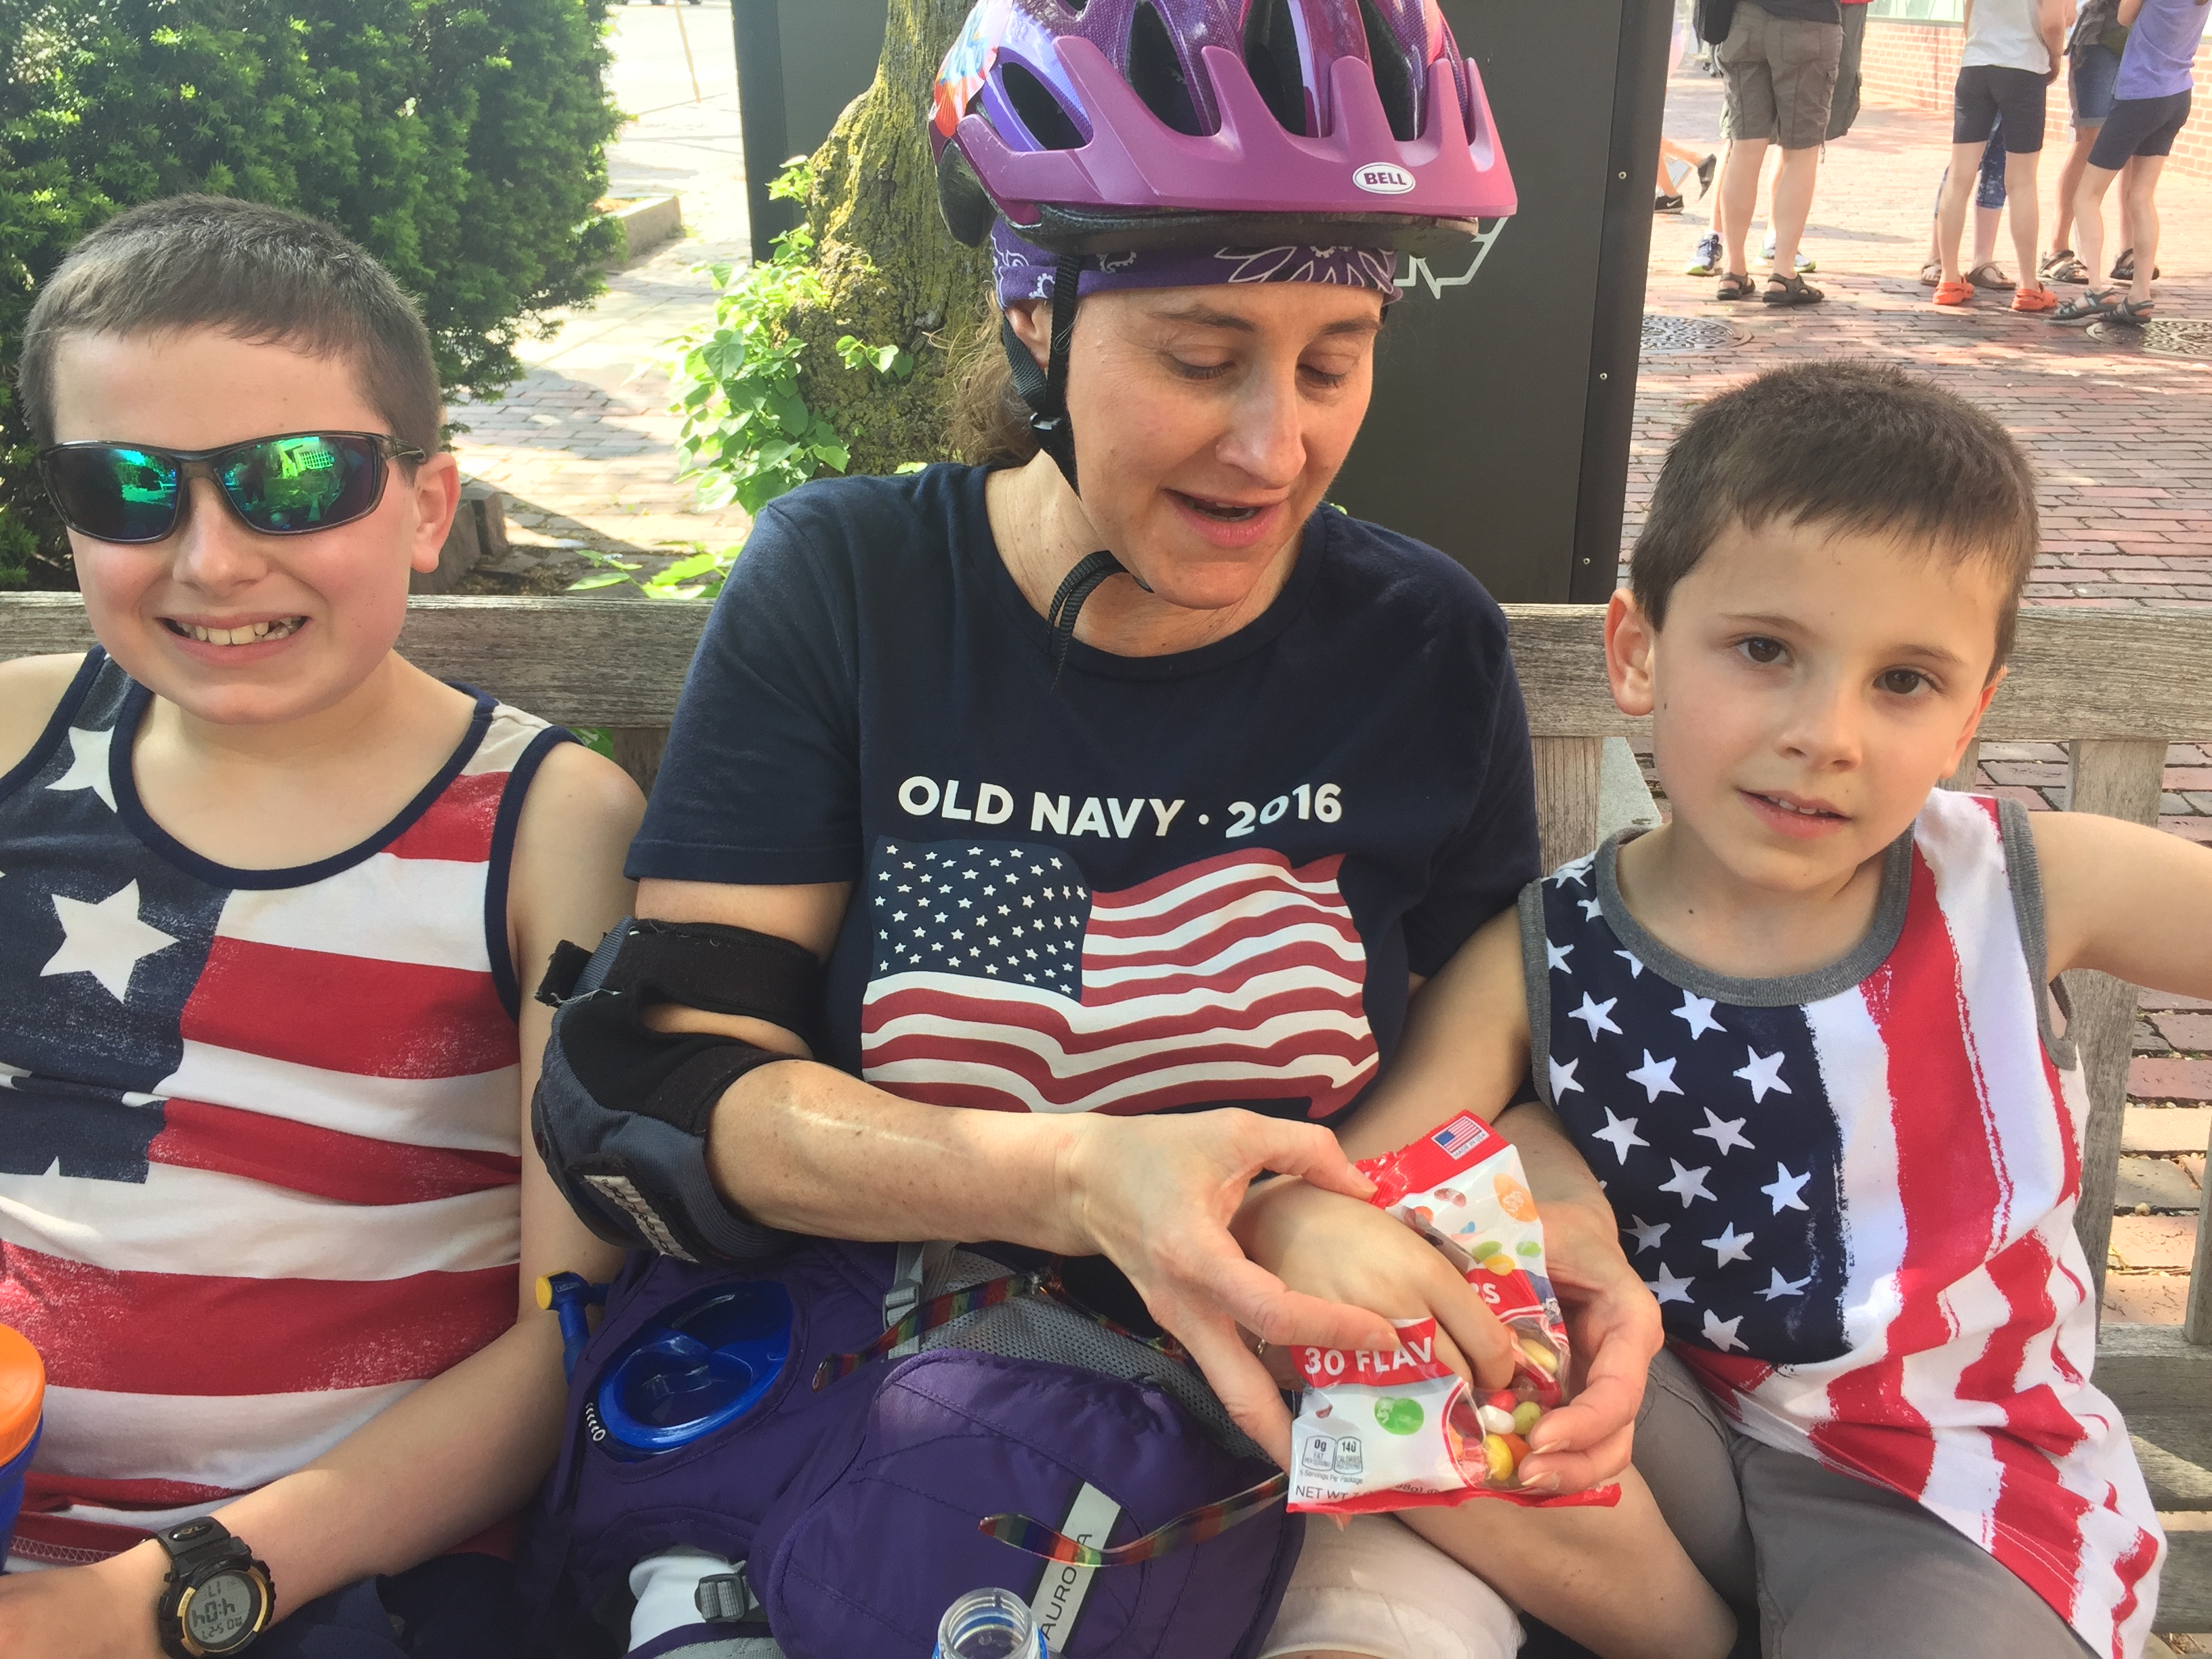 A nice woman and her two kids, enjoying a jelly bean break during a cycling/skating outing.